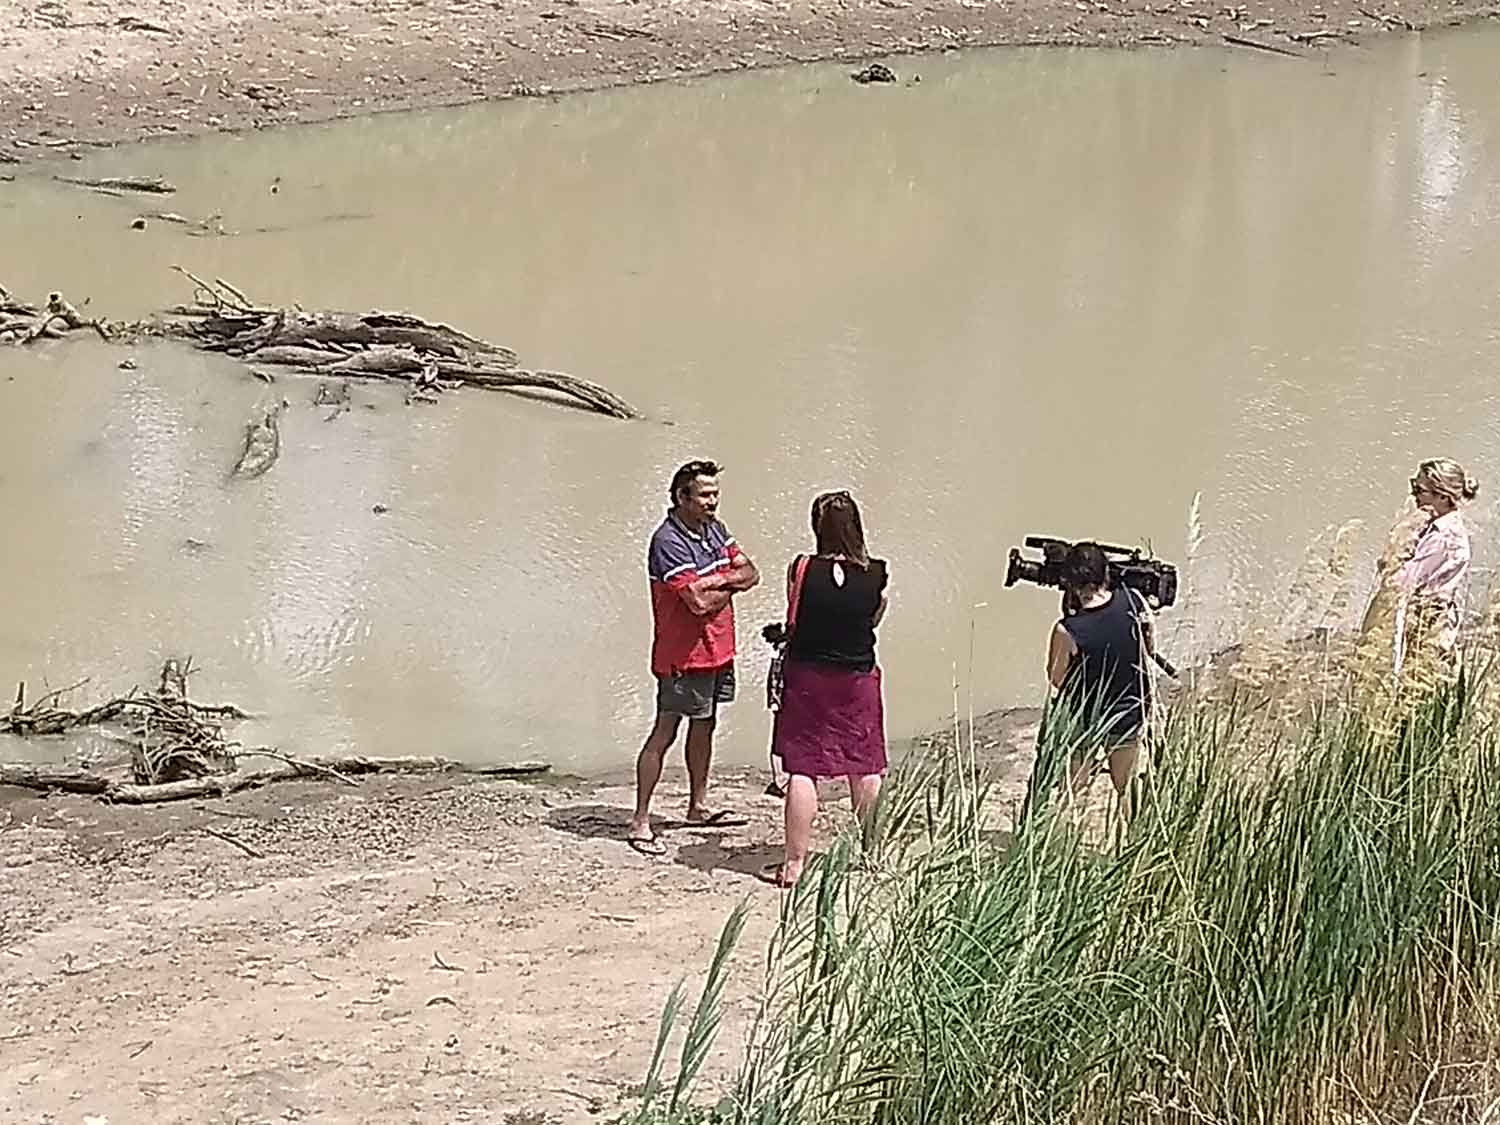 DEG's Ricky Townsend contributed to Rachel Carbonell's ABC news stories about DEG's concerns regarding water mismanagement and health impacts of being forced onto Great Artesian Basin water supply.